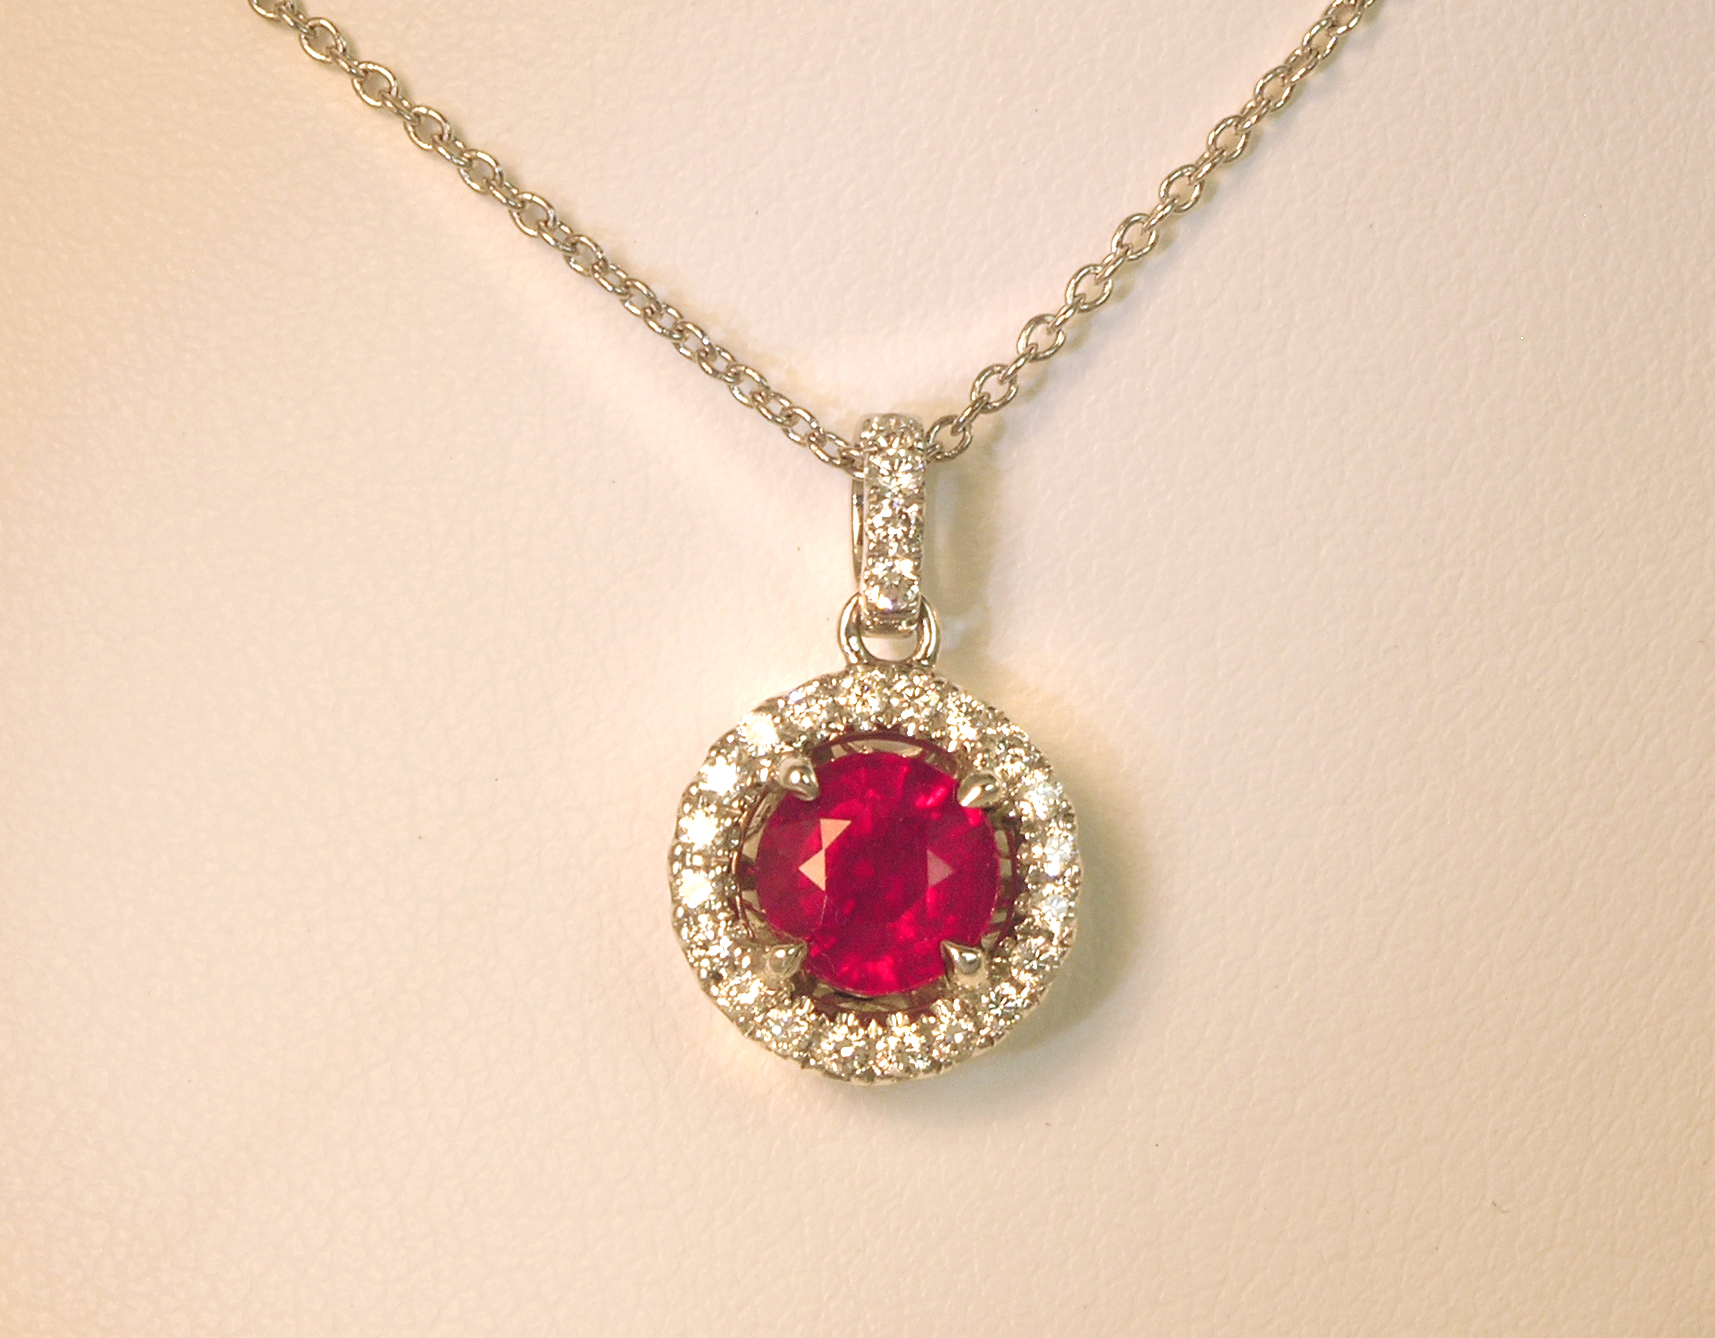 Round Ruby and Diamond Pendant. Custom Diamond Engagement Rings, Custom Diamond Jewelry in Fairfax VA, Washington DC Custom Diamond Engagement Rings, Fairfax VA, Washington DC Custom Diamond Wedding Rings, Fairfax VA, Washington DC Custom Diamond Engagement Jewelry, Fairfax VA, Washington DC Custom Diamond Rings Fairfax VA, Washington DC Custom Diamond Jewelry, Fairfax VA, Washington DC Custom Blue Diamond Ring, Fairfax VA, Washington DC Custom Ruby & Diamond Pendant, Fairfax VA, Washington DC Custom Aquamarine & Diamond Pendant, Fairfax VA, Washington DC Custom Fire Opal & Diamond Pendant, Fairfax VA, Washington DC Custom Pink Stone, Diamond Ring, Fairfax VA, Washington DC Custom Pink Tourmaline, Diamond Ring, Fairfax VA, Washington DC Custom Yellow Stone, Diamond Ring, Fairfax VA, Washington DC Custom Pink Sapphire, Diamond Ring, Fairfax VA, Washington DC Custom Sapphire, Diamond Ring, Fairfax VA, Washington DC Custom Ruby, Diamond Ring, Fairfax VA, Washington DC Custom Blue Diamond Ring, Fairfax VA, Washington DC Custom Ruby, Diamond Pendant, Fairfax VA, Washington DC Custom Diamond Cross Pendant, Fairfax VA, Washington DC Custom Engagement Rings, Fairfax VA, Washington DC Best Custom Jewelers, Fairfax VA, Washington DC Custom Engagement Jewelry, Fairfax VA, Washington DC Custom Engagement Rings Fairfax VA, Washington DC Custom Jewelry, Fairfax VA, Washington DC Most Popular Engagement Rings, Fairfax VA, Washington DC Custom Designer Rings, Fairfax VA, Washington DC Custom Diamond Jewelry Store, Fairfax VA, Washington DC Custom Diamond Jewelry, Fairfax VA, Washington DC Custom Diamonds Rings, Fairfax VA, Washington DC Perfect Engagement Rings, Fairfax VA, Washington DC Custom Engagement Rings, Fairfax VA, Washington DC Custom Gold Jewelry, Fairfax VA, Washington DC Custom Jewelers, Fairfax VA, Washington DC Custom Mens Rings, Fairfax VA, Washington DC Custom Wedding Bands, Fairfax VA, Washington DC Custom Wedding Rings, Fairfax VA, Washington DC Custom Womens Jewelry, Fairfax VA, Washington DC Custom Gold Engagement Rings, Fairfax VA, Washington DC